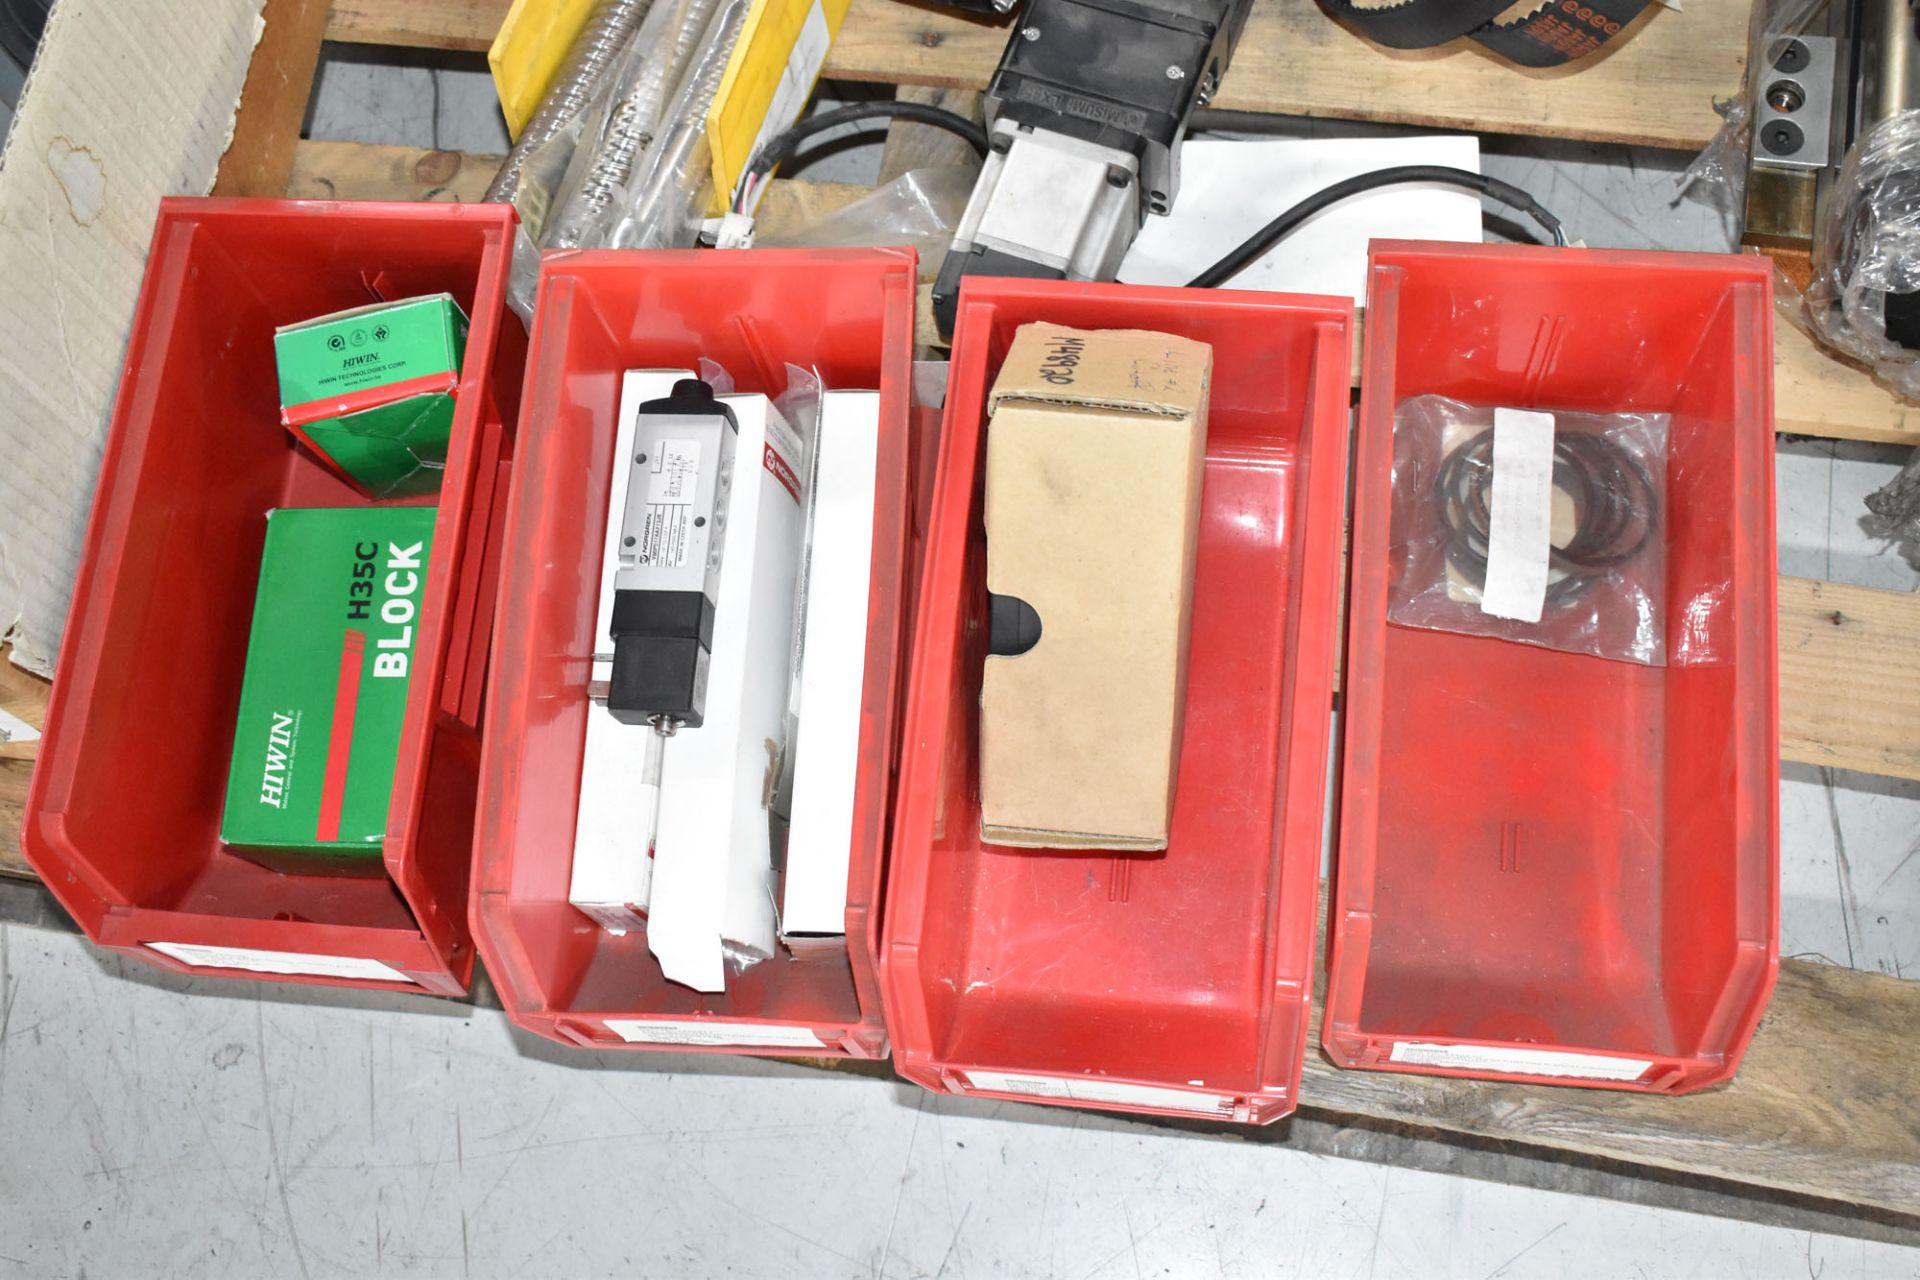 LOT/ PALLET WITH CONTENTS CONSISTING OF FITTINGS, HARDWARE, AND EXTRUDER LINE COMPONENTS [RIGGING - Image 5 of 5